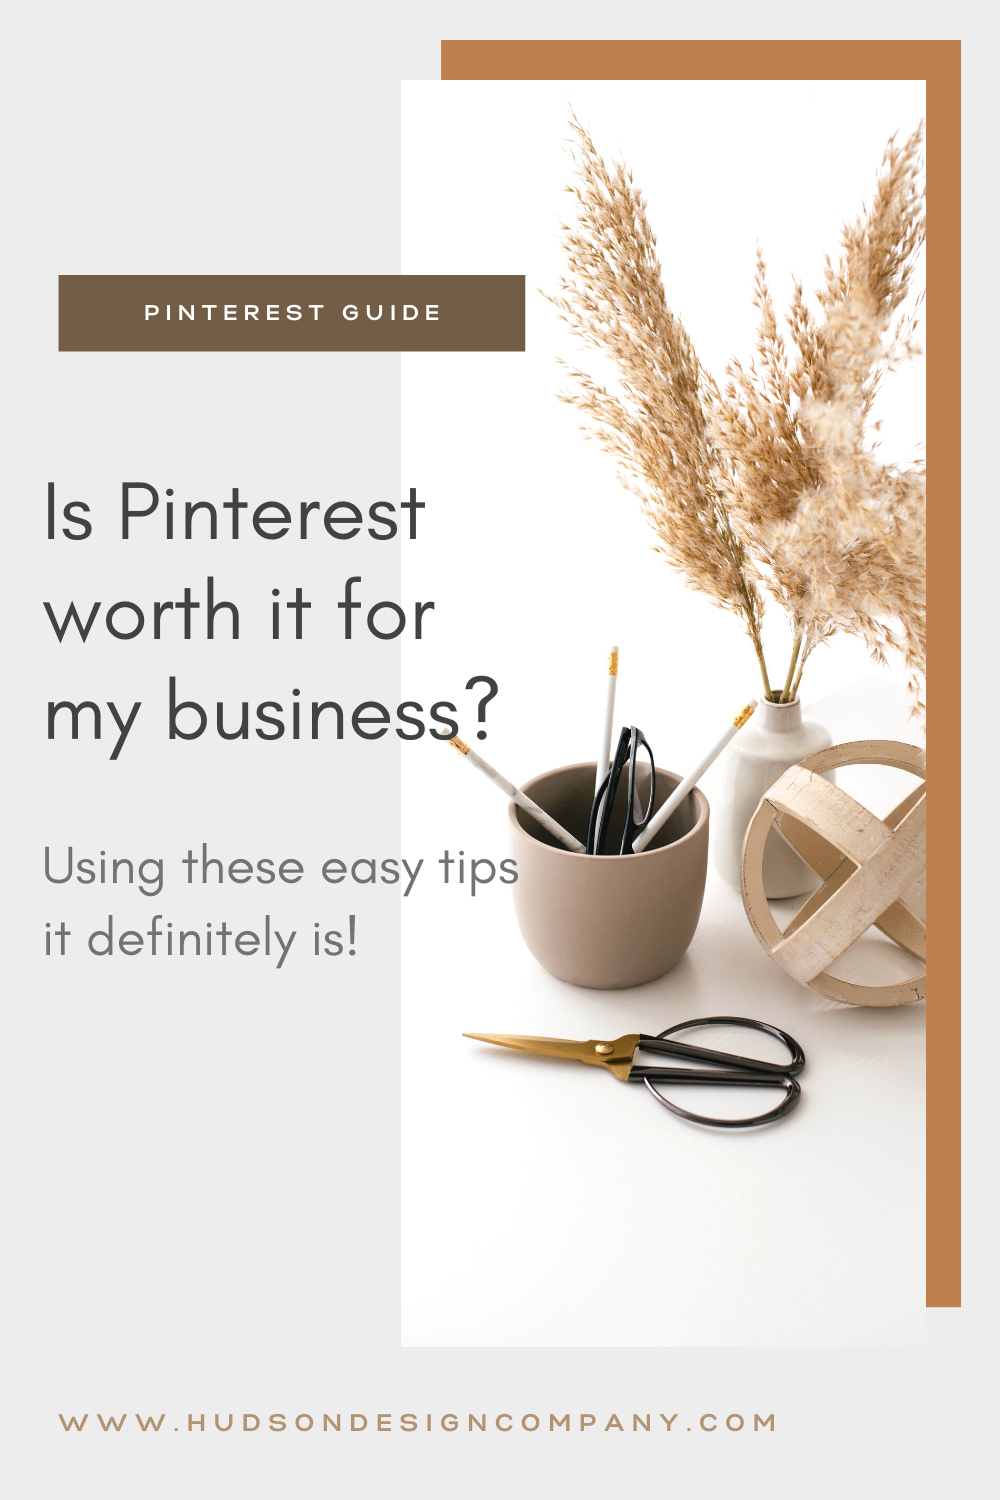 Modern Pinterest Pin Graphic Template - Is Pinterest Worth it for My Business